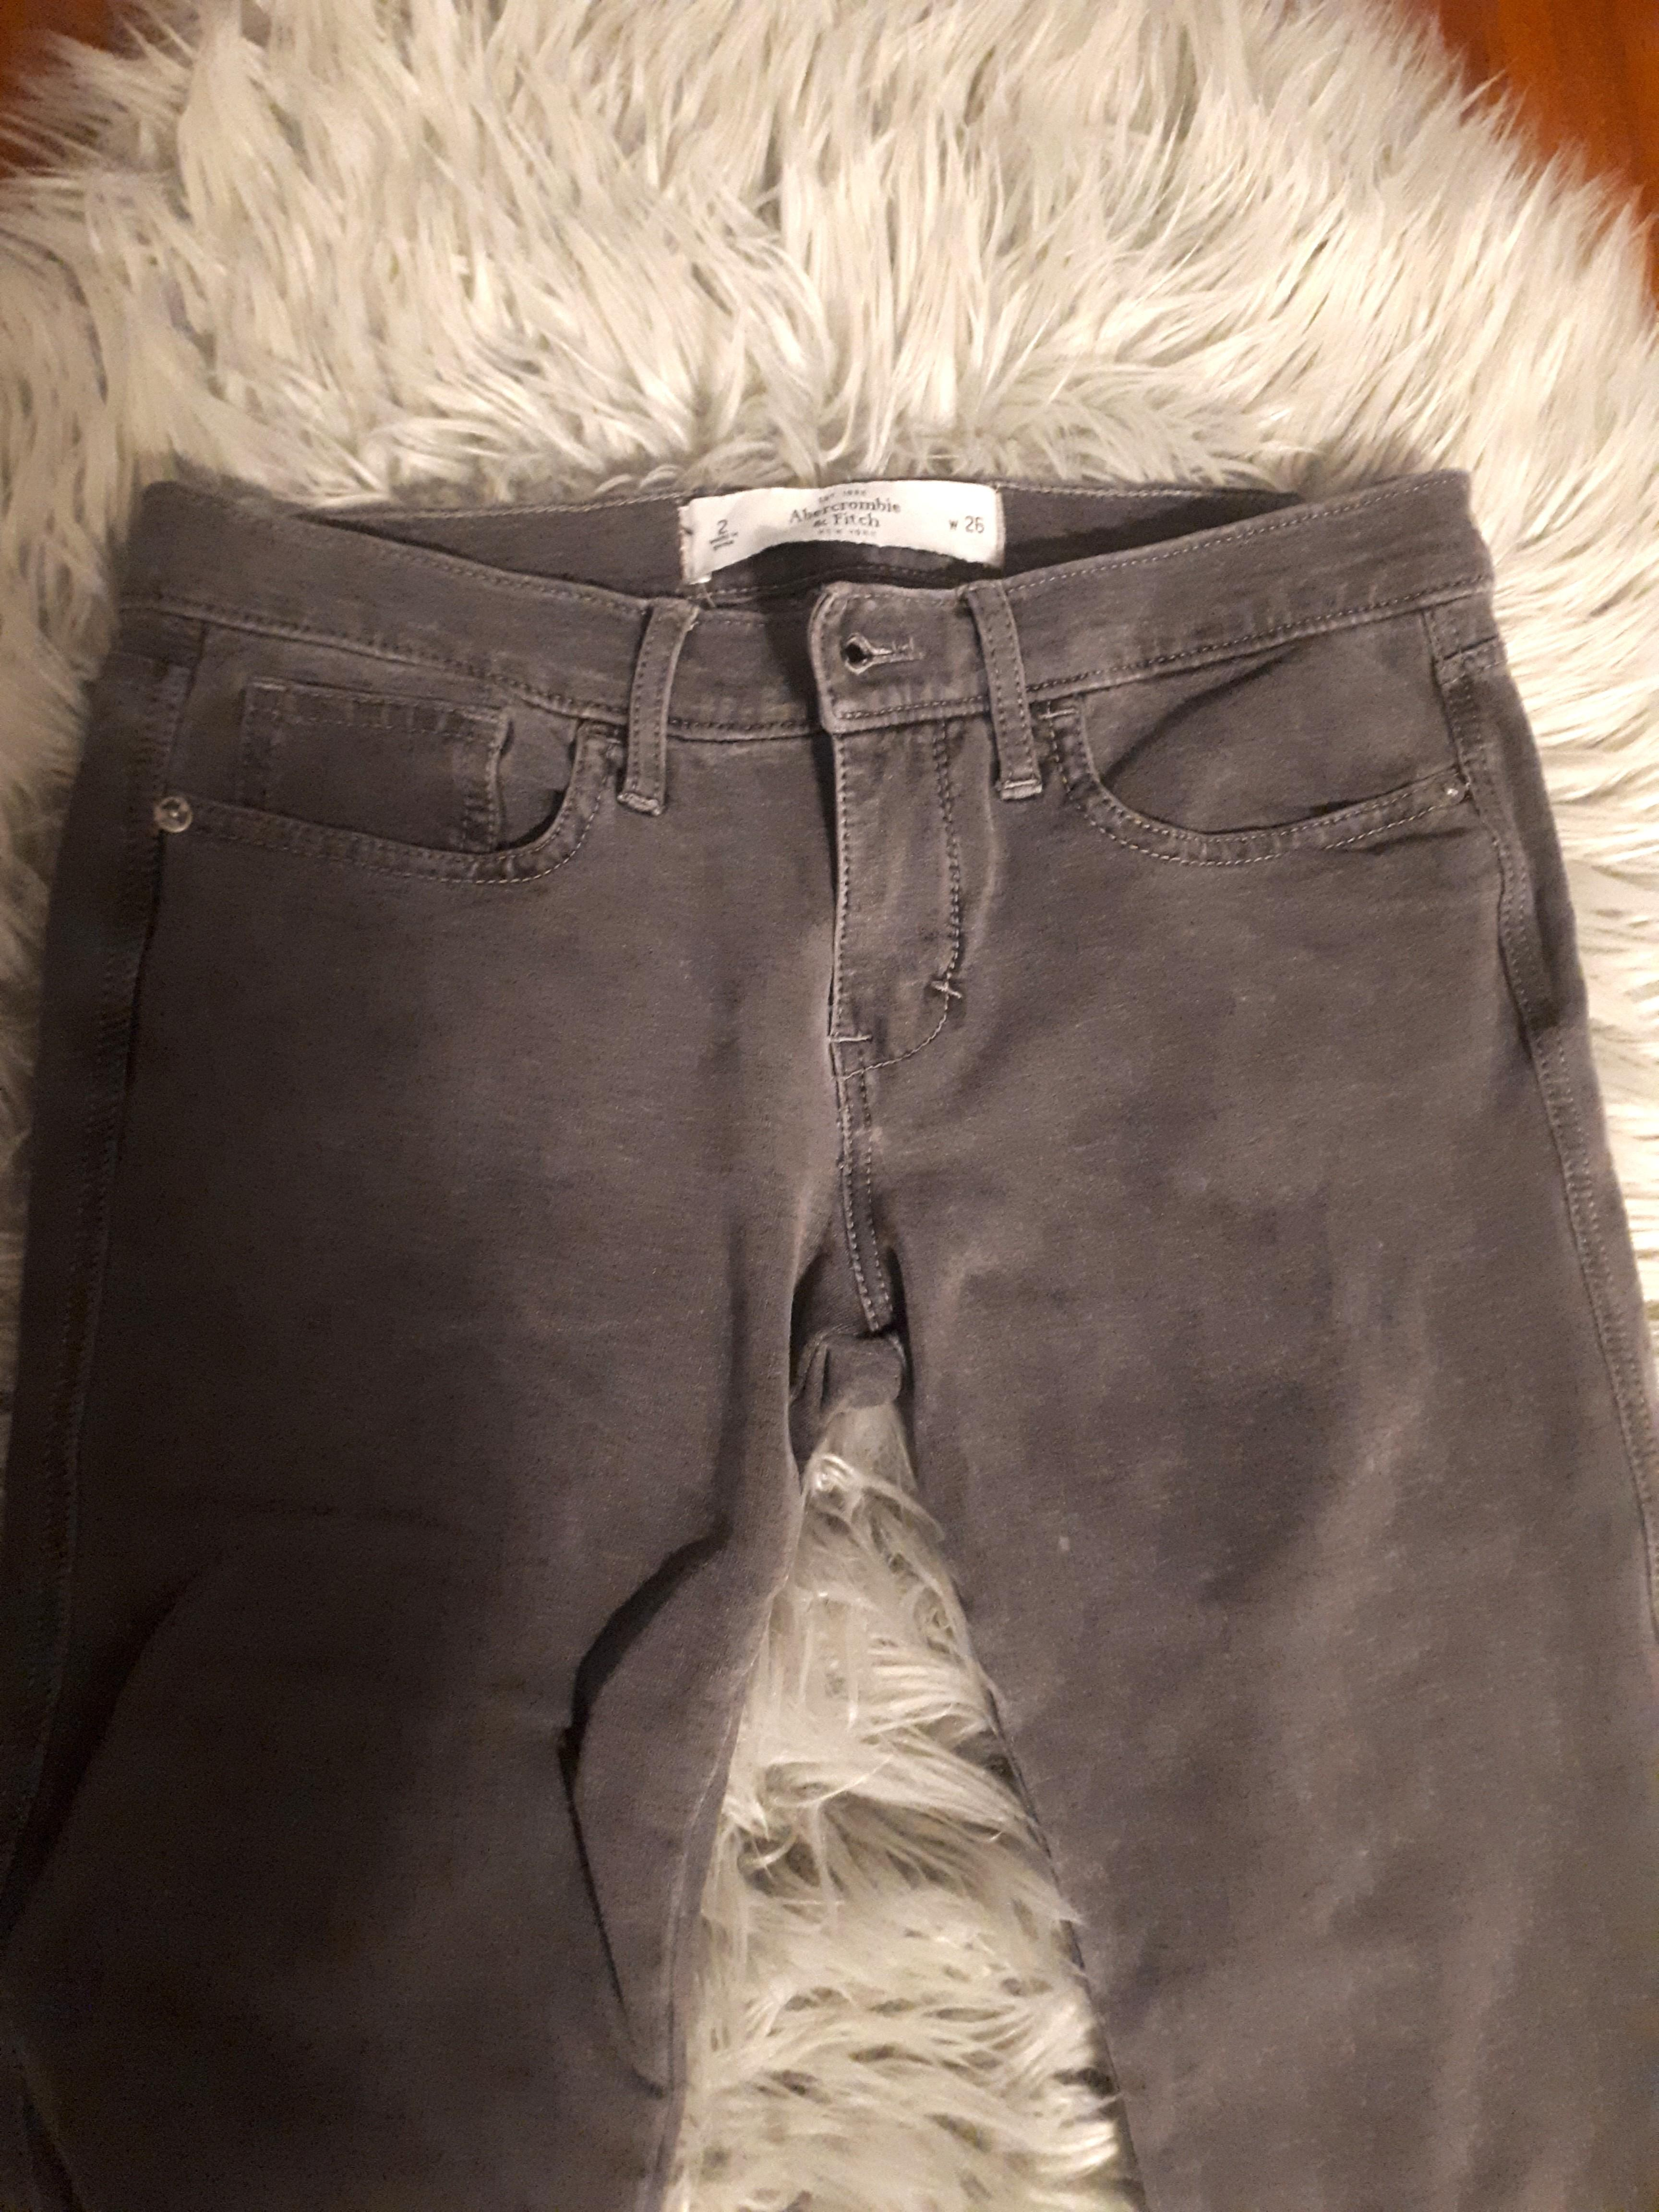 Abercrombie & Fitch: Perfect Stretch Grey Skinny Jeans/Jeggings